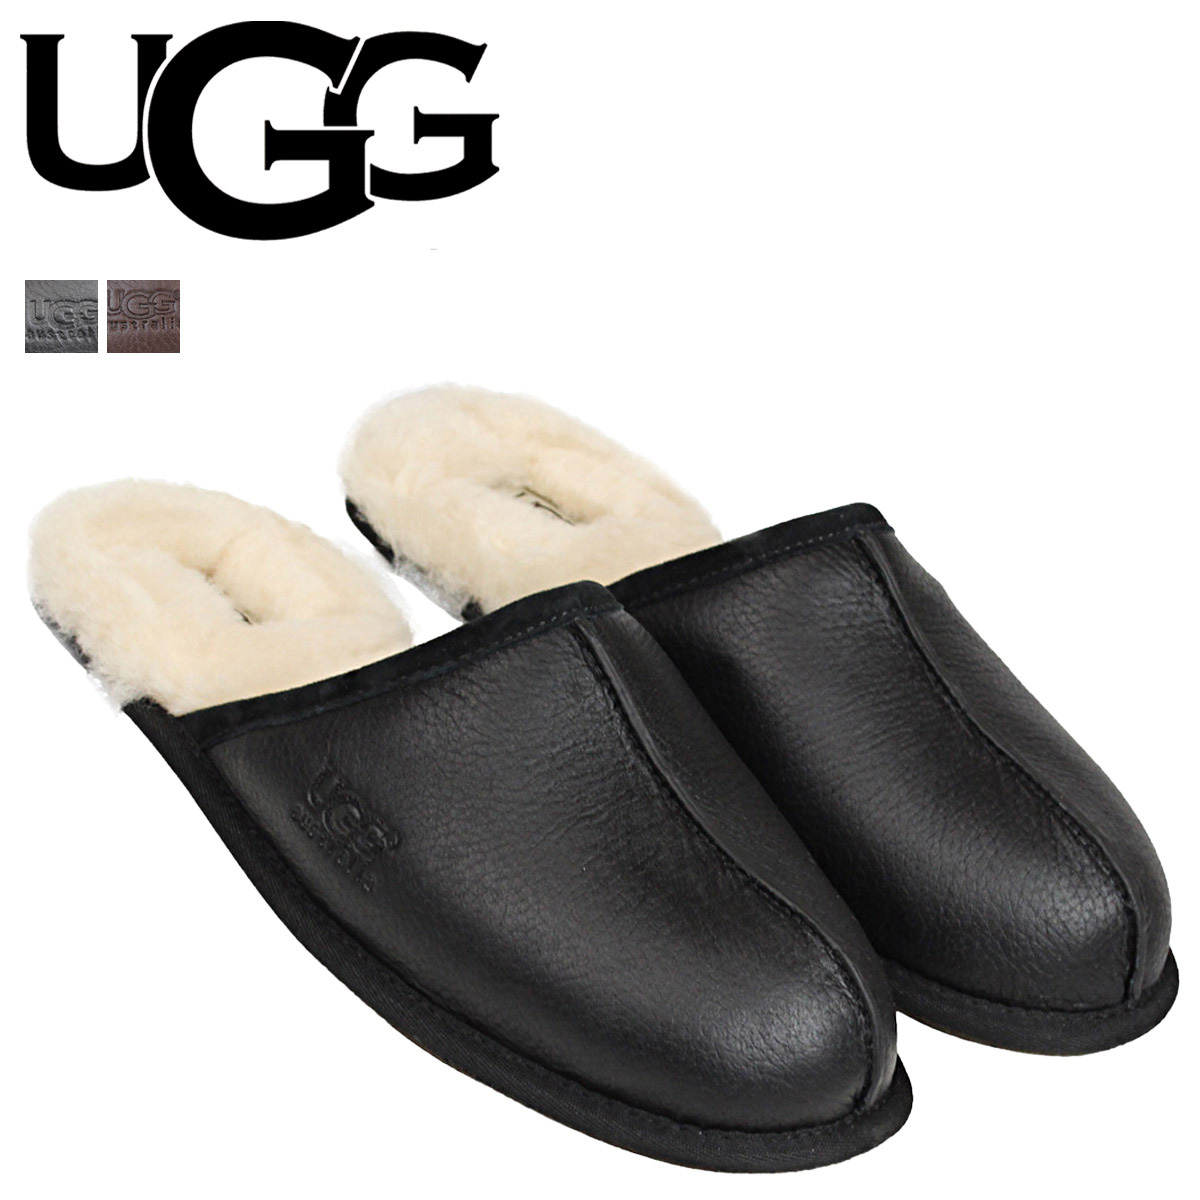 41a8a127c8a UGG UGG mens MENS SCUFF slippers scuff 1001546 black [9/30 new in stock]